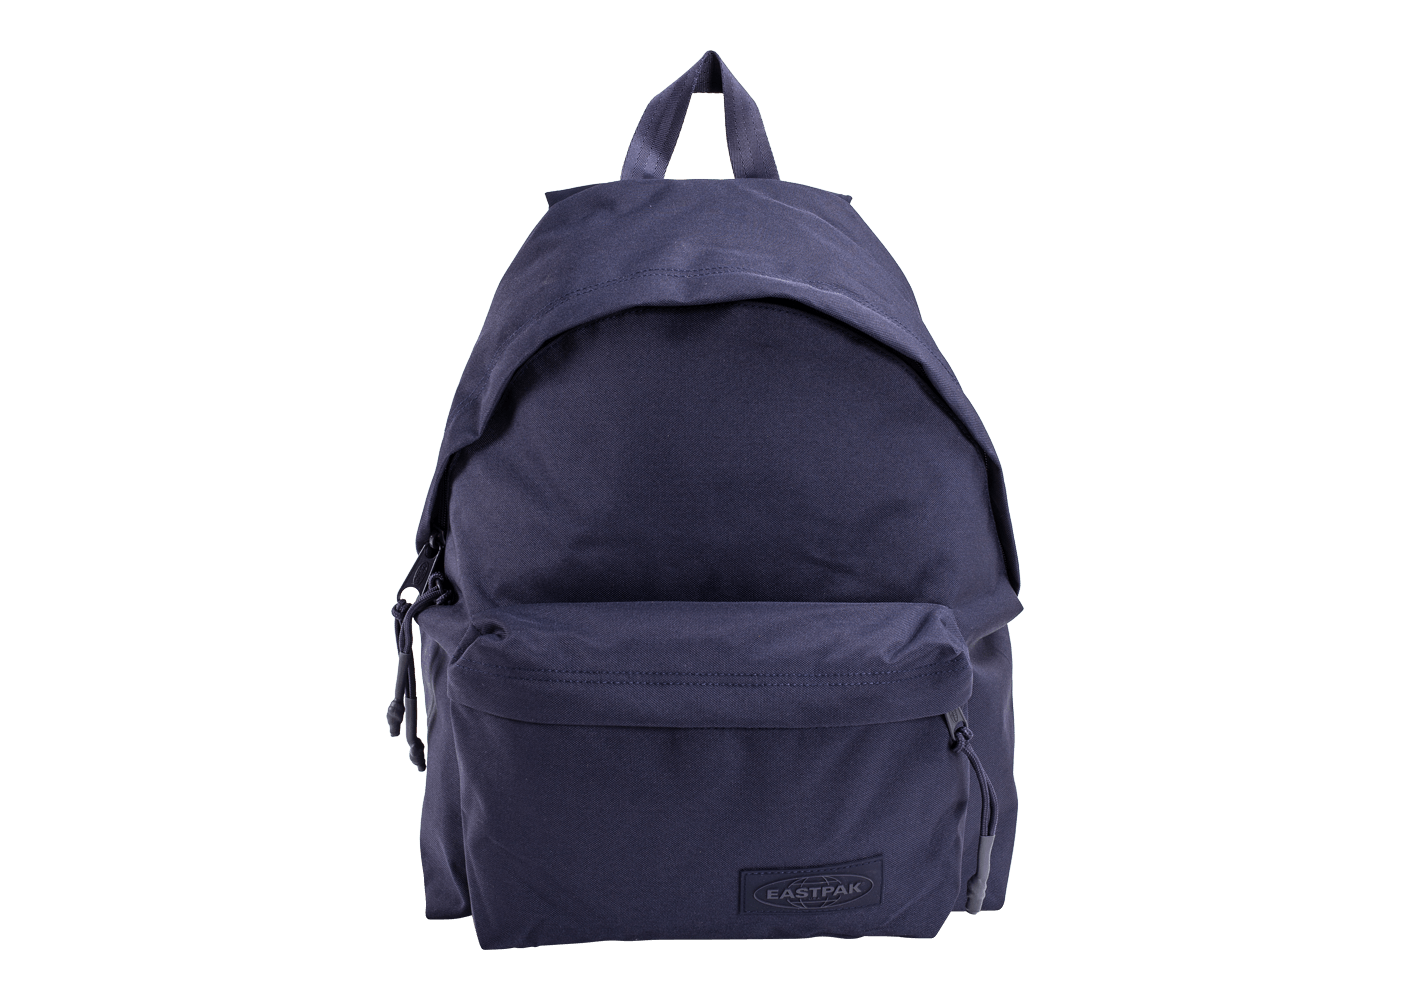 Soldes - Sac Sac à Dos Padded Pak'r Navy Matchy Homme Bl4aHXA